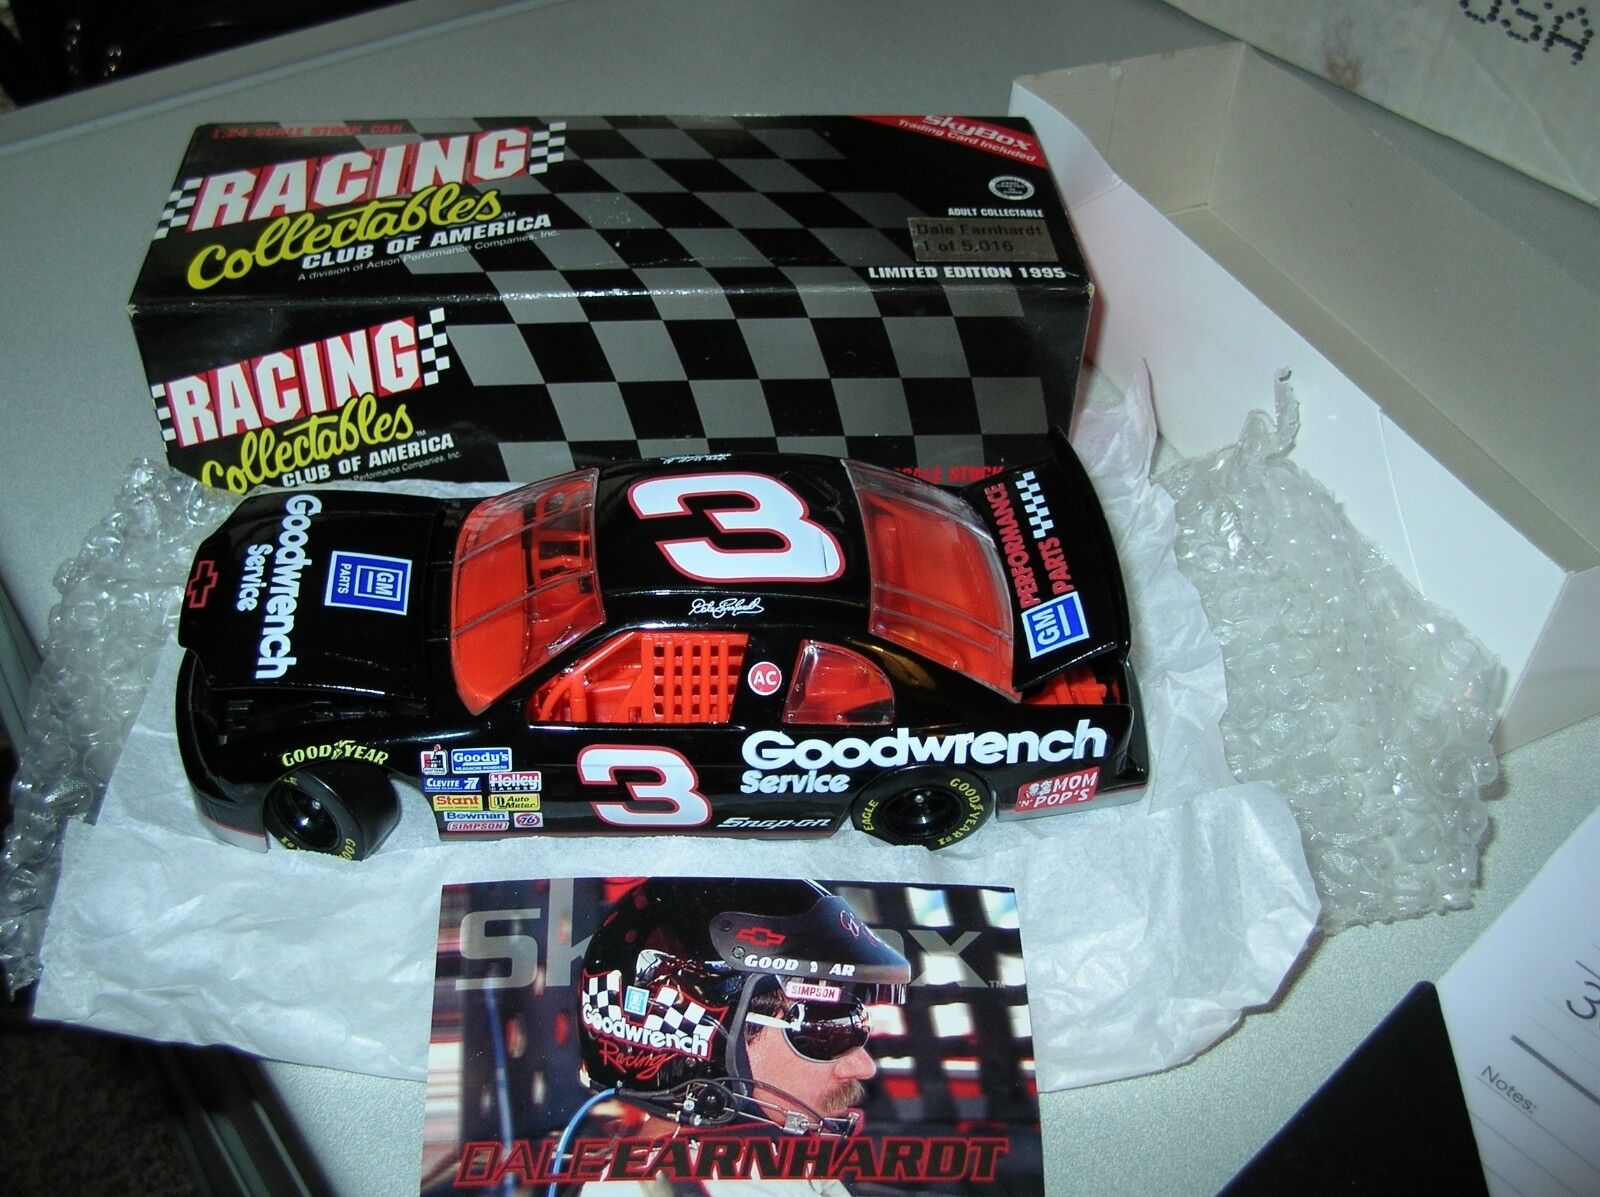 Orig 1995 Dale Earnhardt 3 noir GM parts NASCAR Diecast Racing Collectables Club of America Goodwrench Skybox